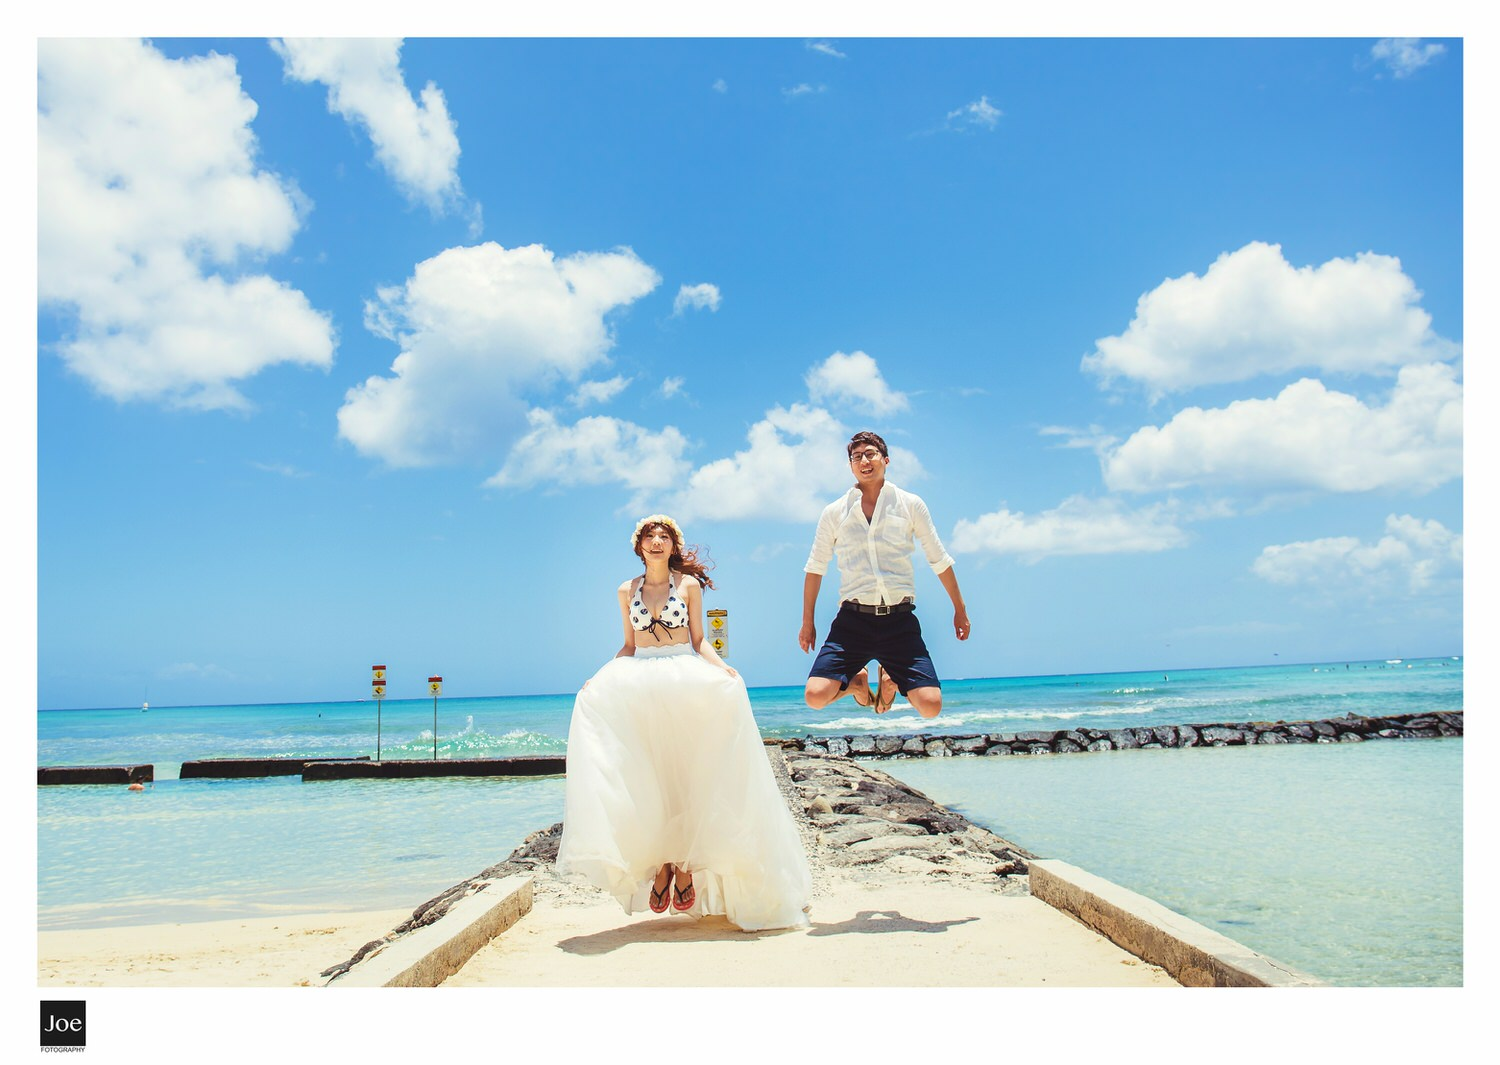 075-waikiki-beach-hawaii-pre-wedding-tiffany-tony-joe-fotography.jpg